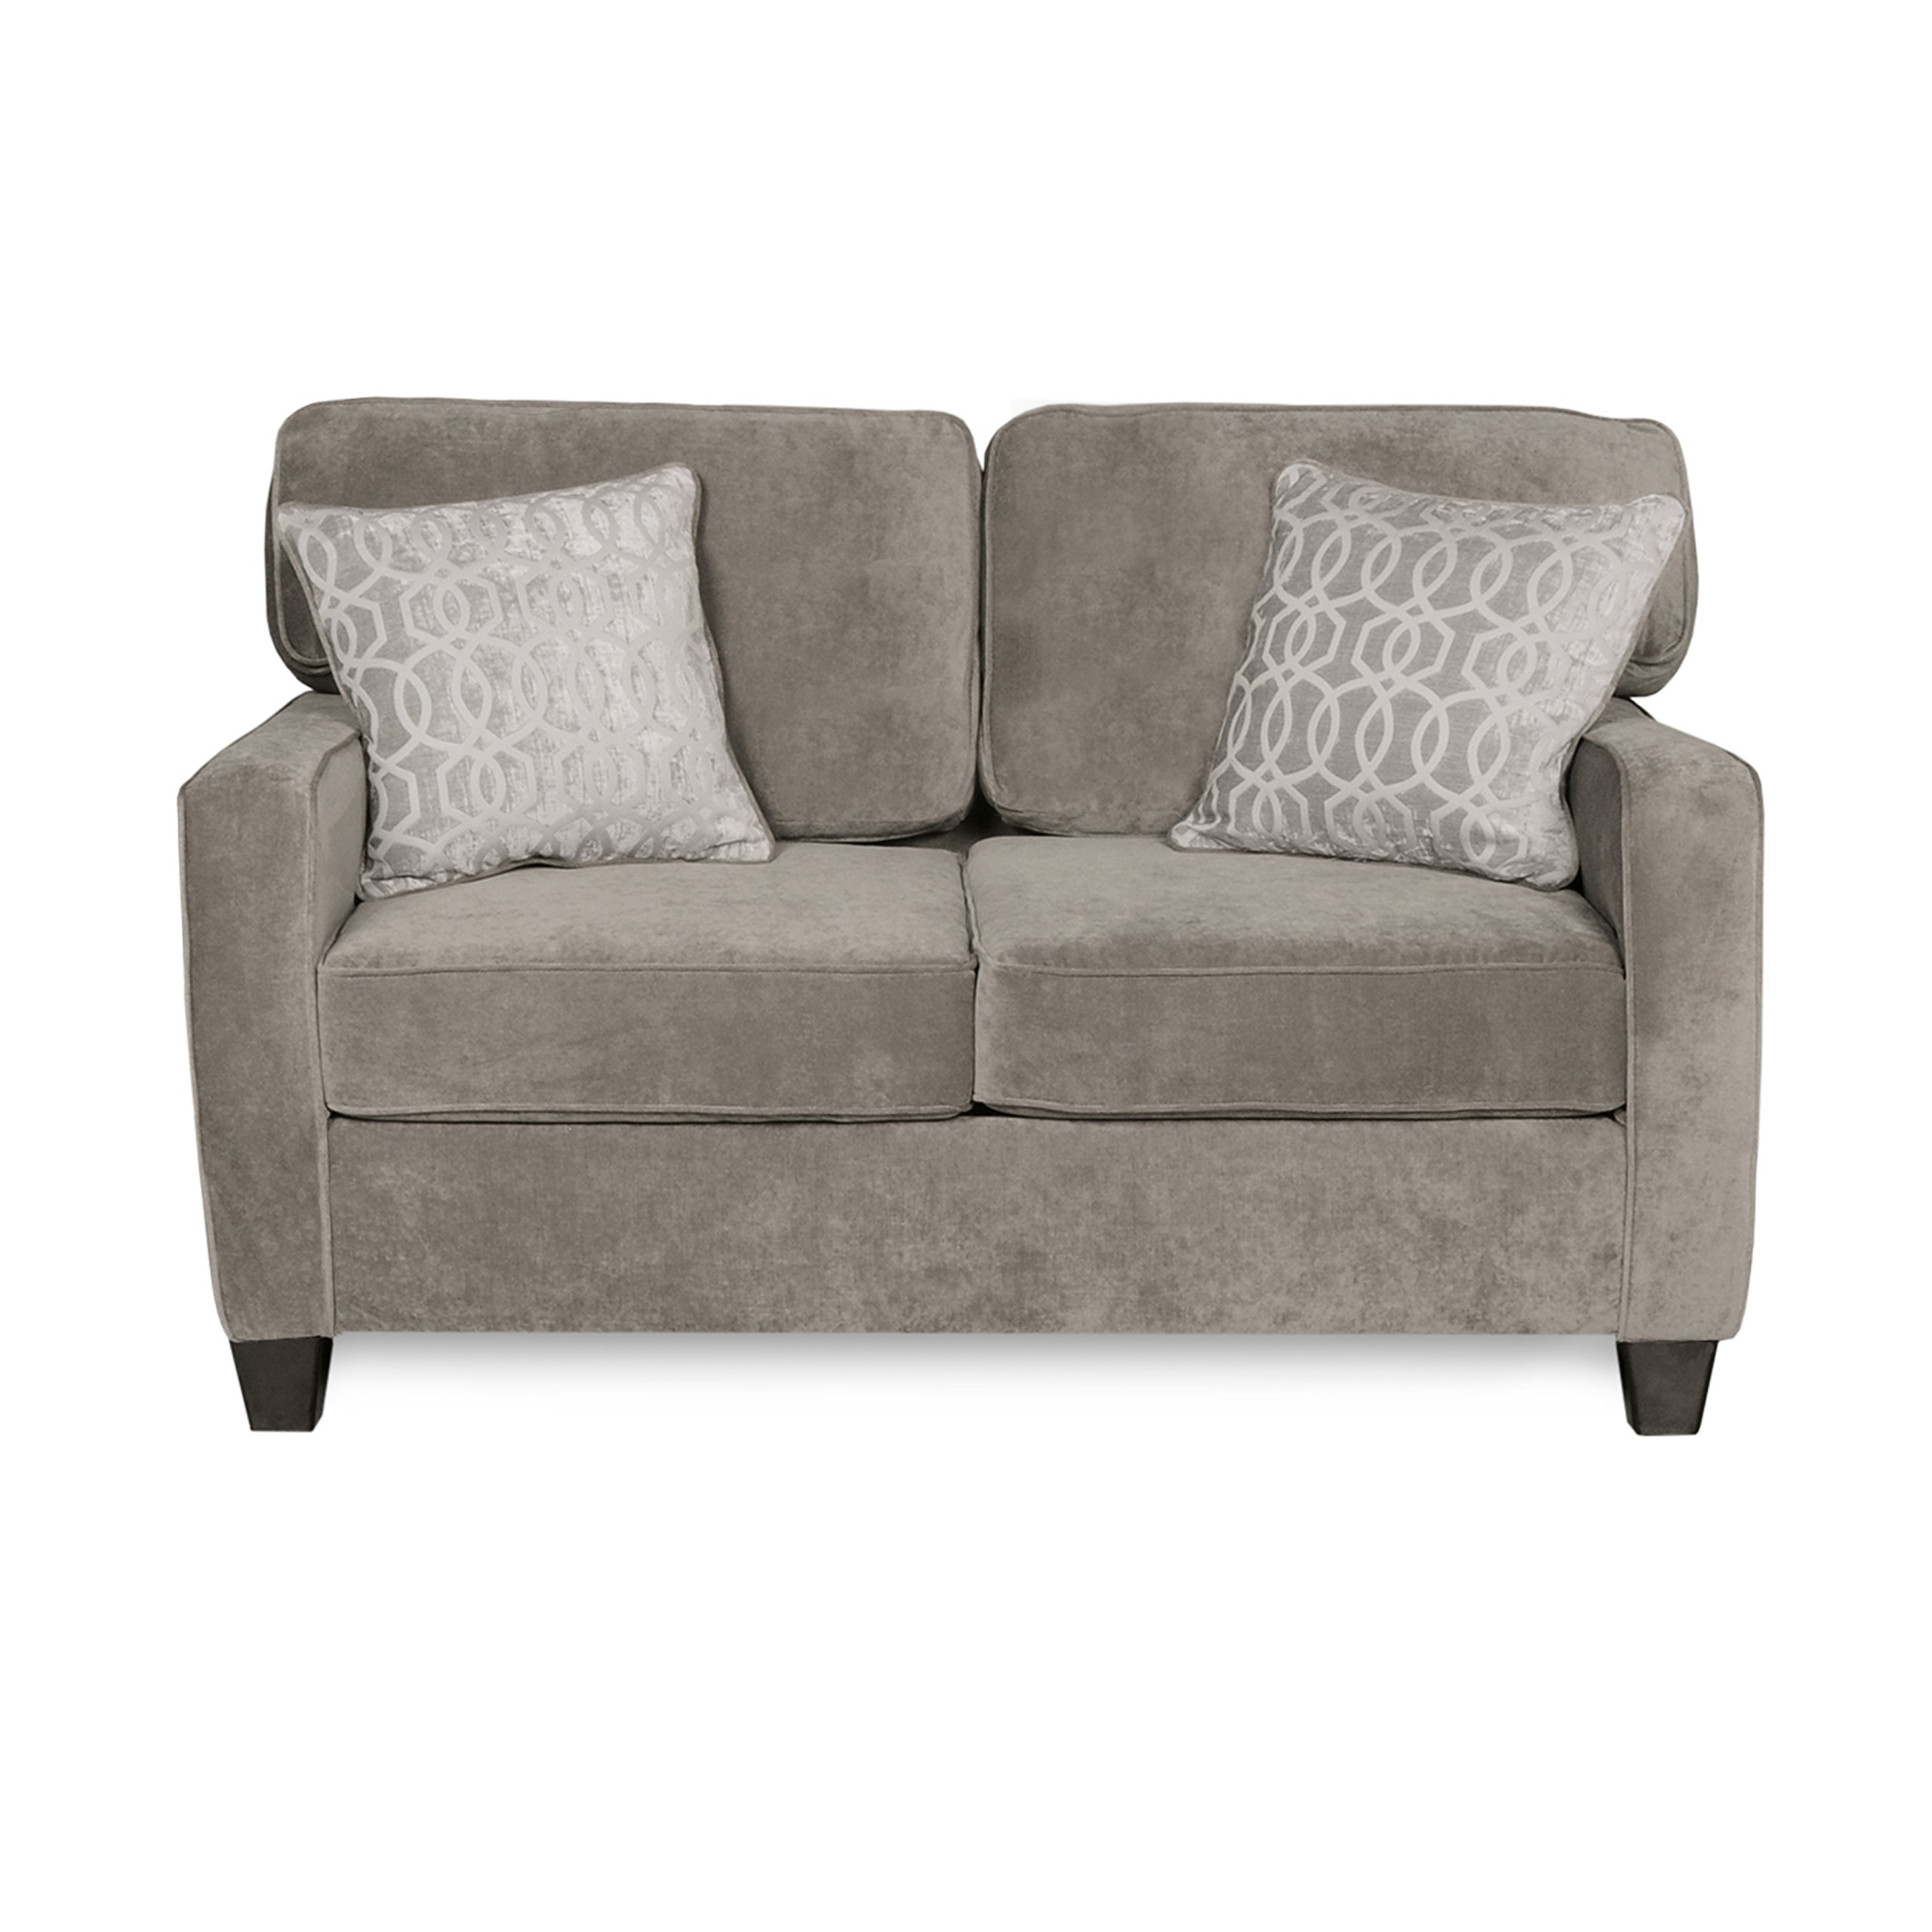 """Fusion Platinum Living Room Love Seat Sofa with Accent Throw Pillows   Contemporary Casual Design, Size of 65.5""""x36""""x37"""" Assembled"""